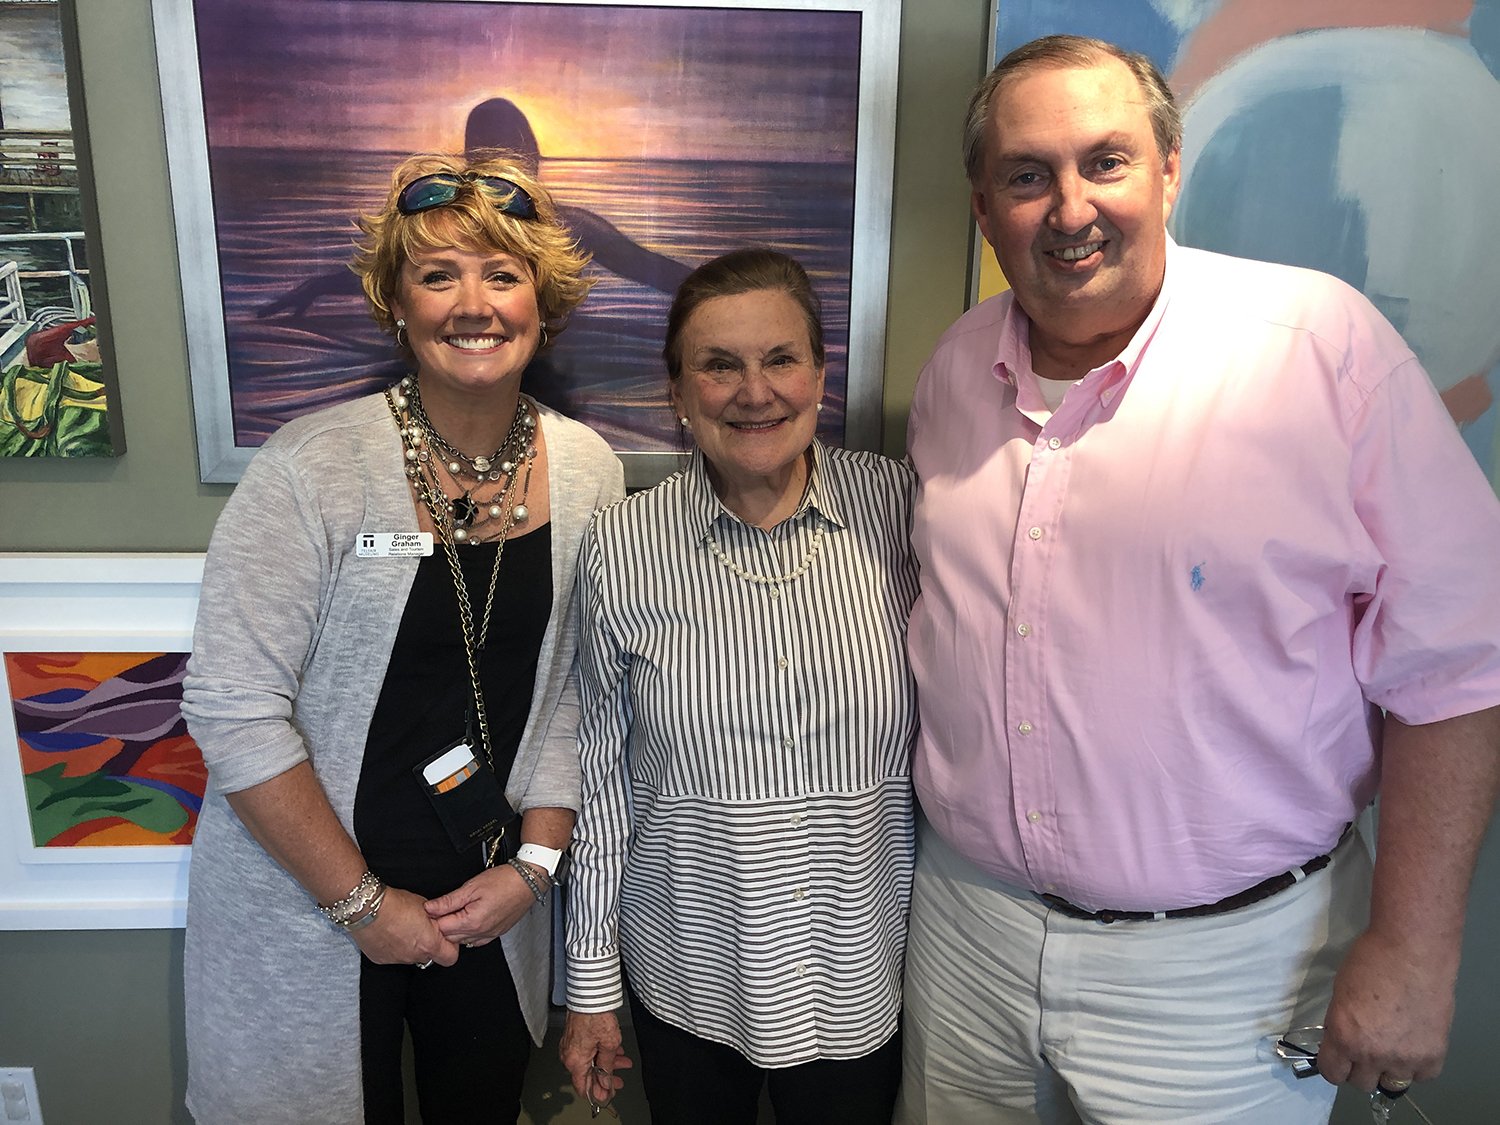 'Magnum Opus', Arts on the Coast Annual Exhibit Judges (from left to right): Ginger Graham, Sales and Tourism Relations Manager, Telfair Museums, Gale Steves, Director of ARC Savannah, and Mark Bolton, Vice President, Marketing Communications and Economic Development, Coastal Electric.